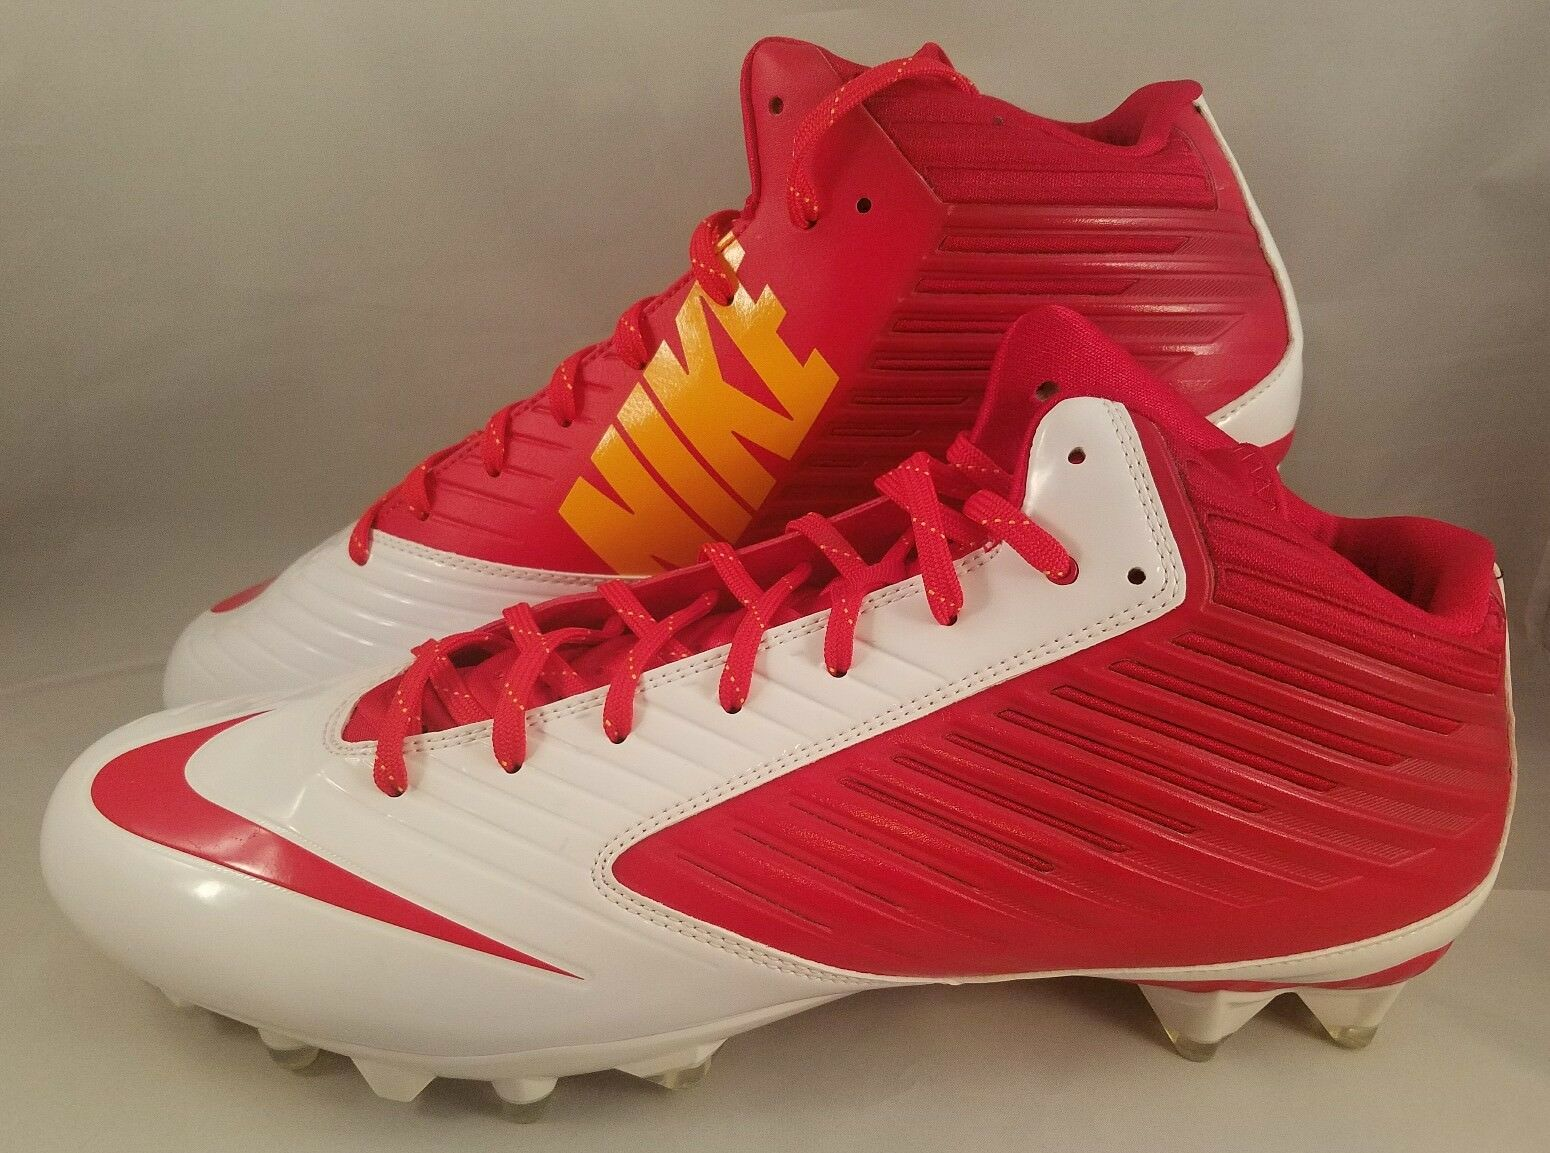 fed4f3c9f09f Nike Vapor Speed 3/4 TD Football Cleats Men's Size 15 Red White ...